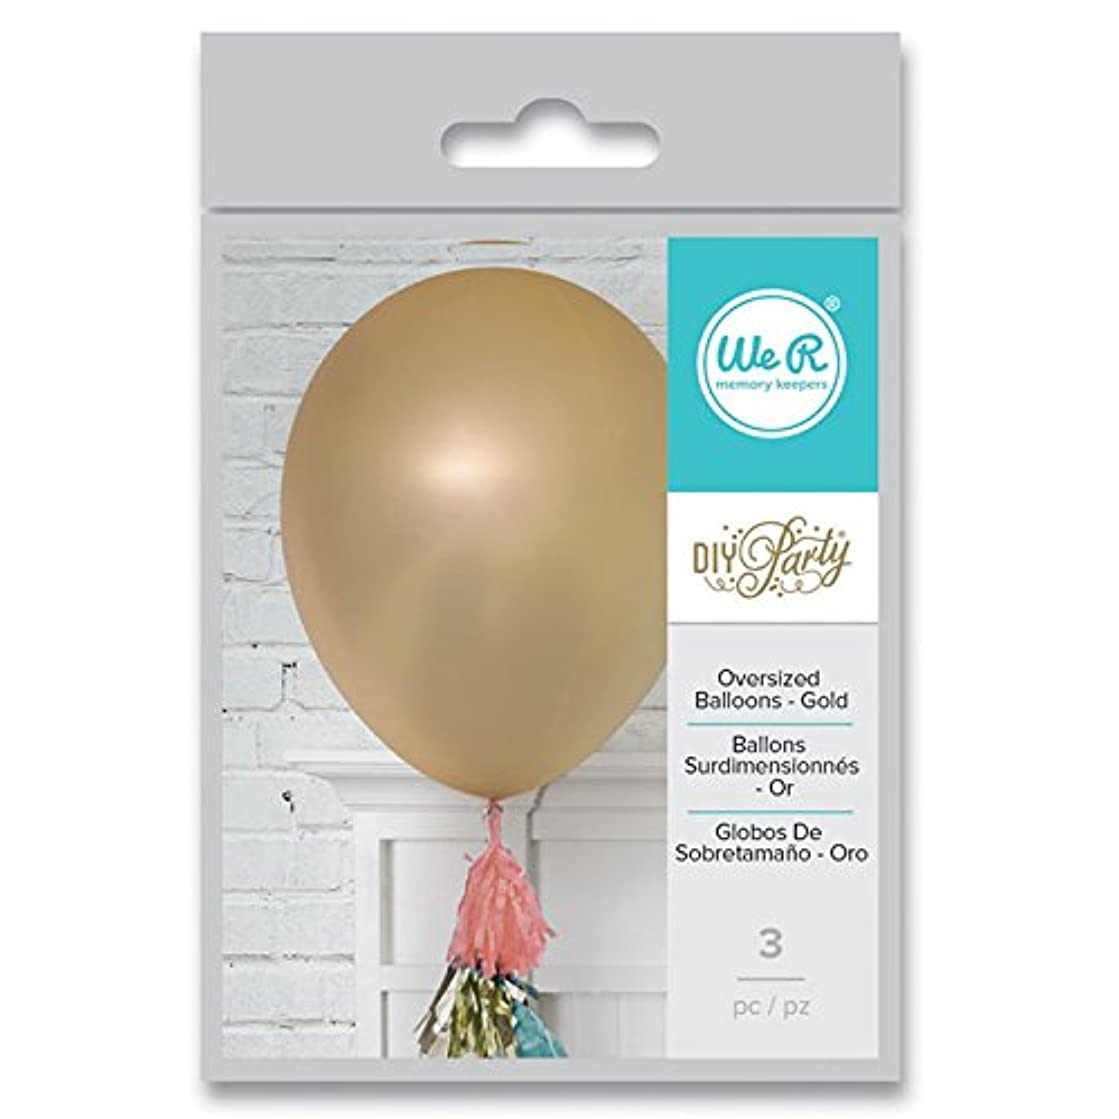 American Crafts We R Memory Keepers Motion DIY Party Gold Balloons 3 Piece